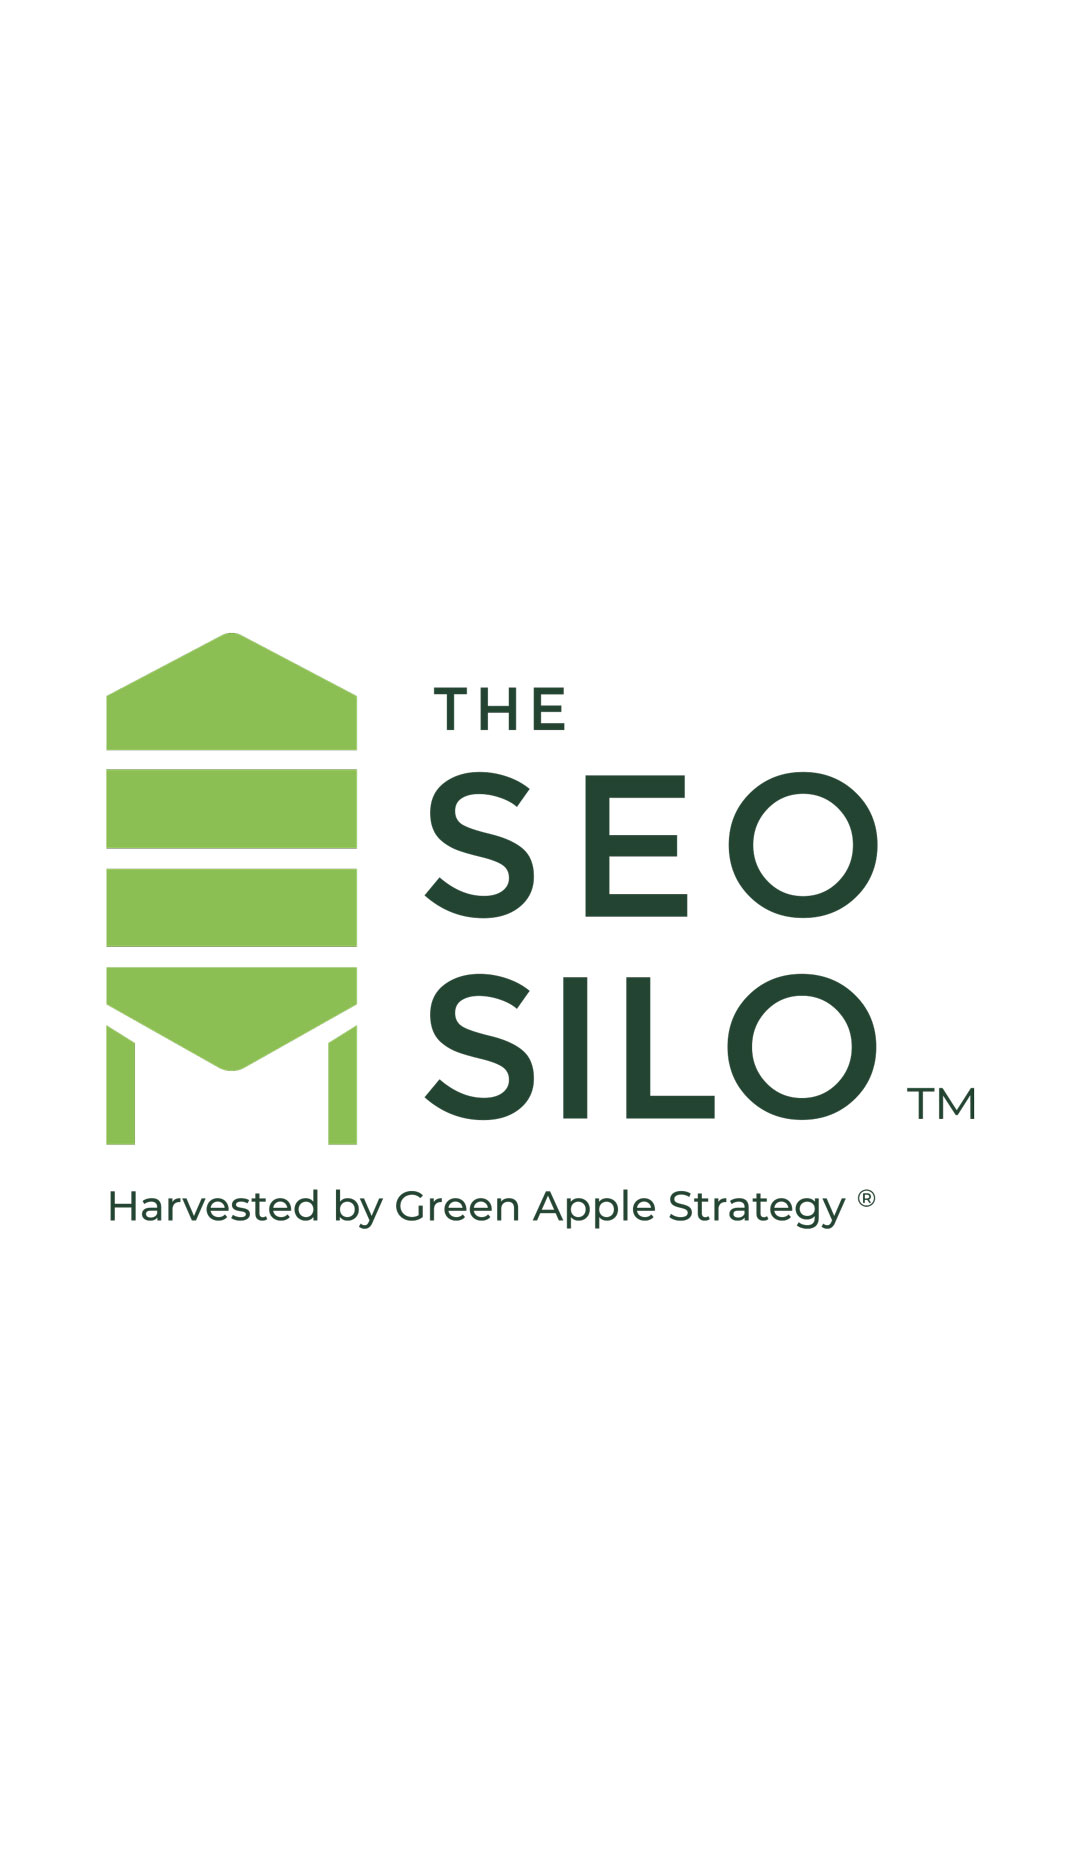 The SEO Silo logo